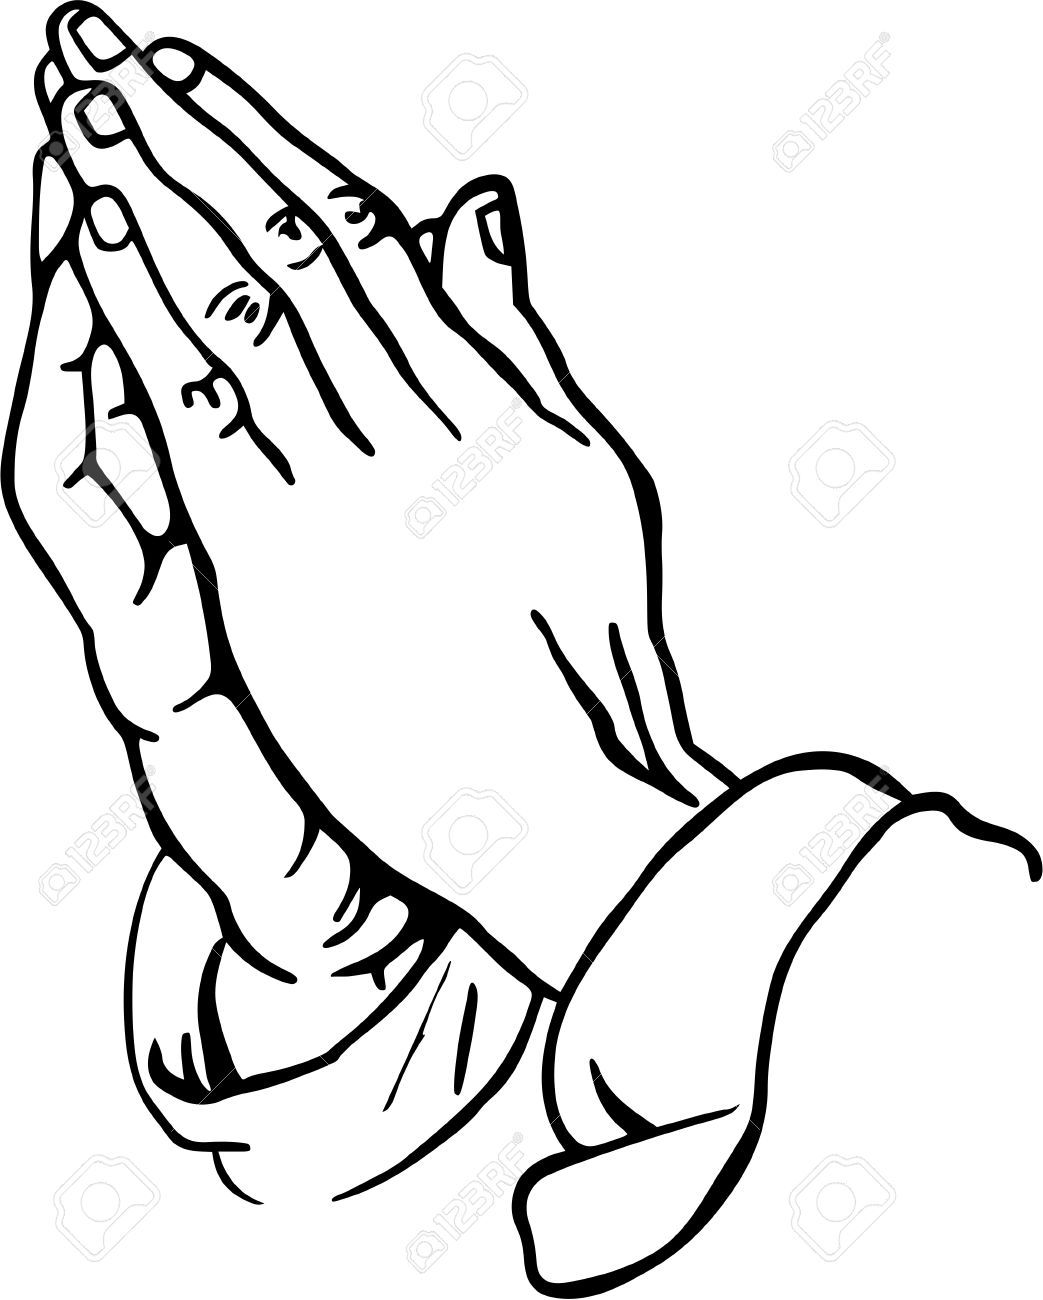 praying hands clipart stock photo picture and royalty free image rh pinterest com praying hands clip art images praying hands clip art black and white